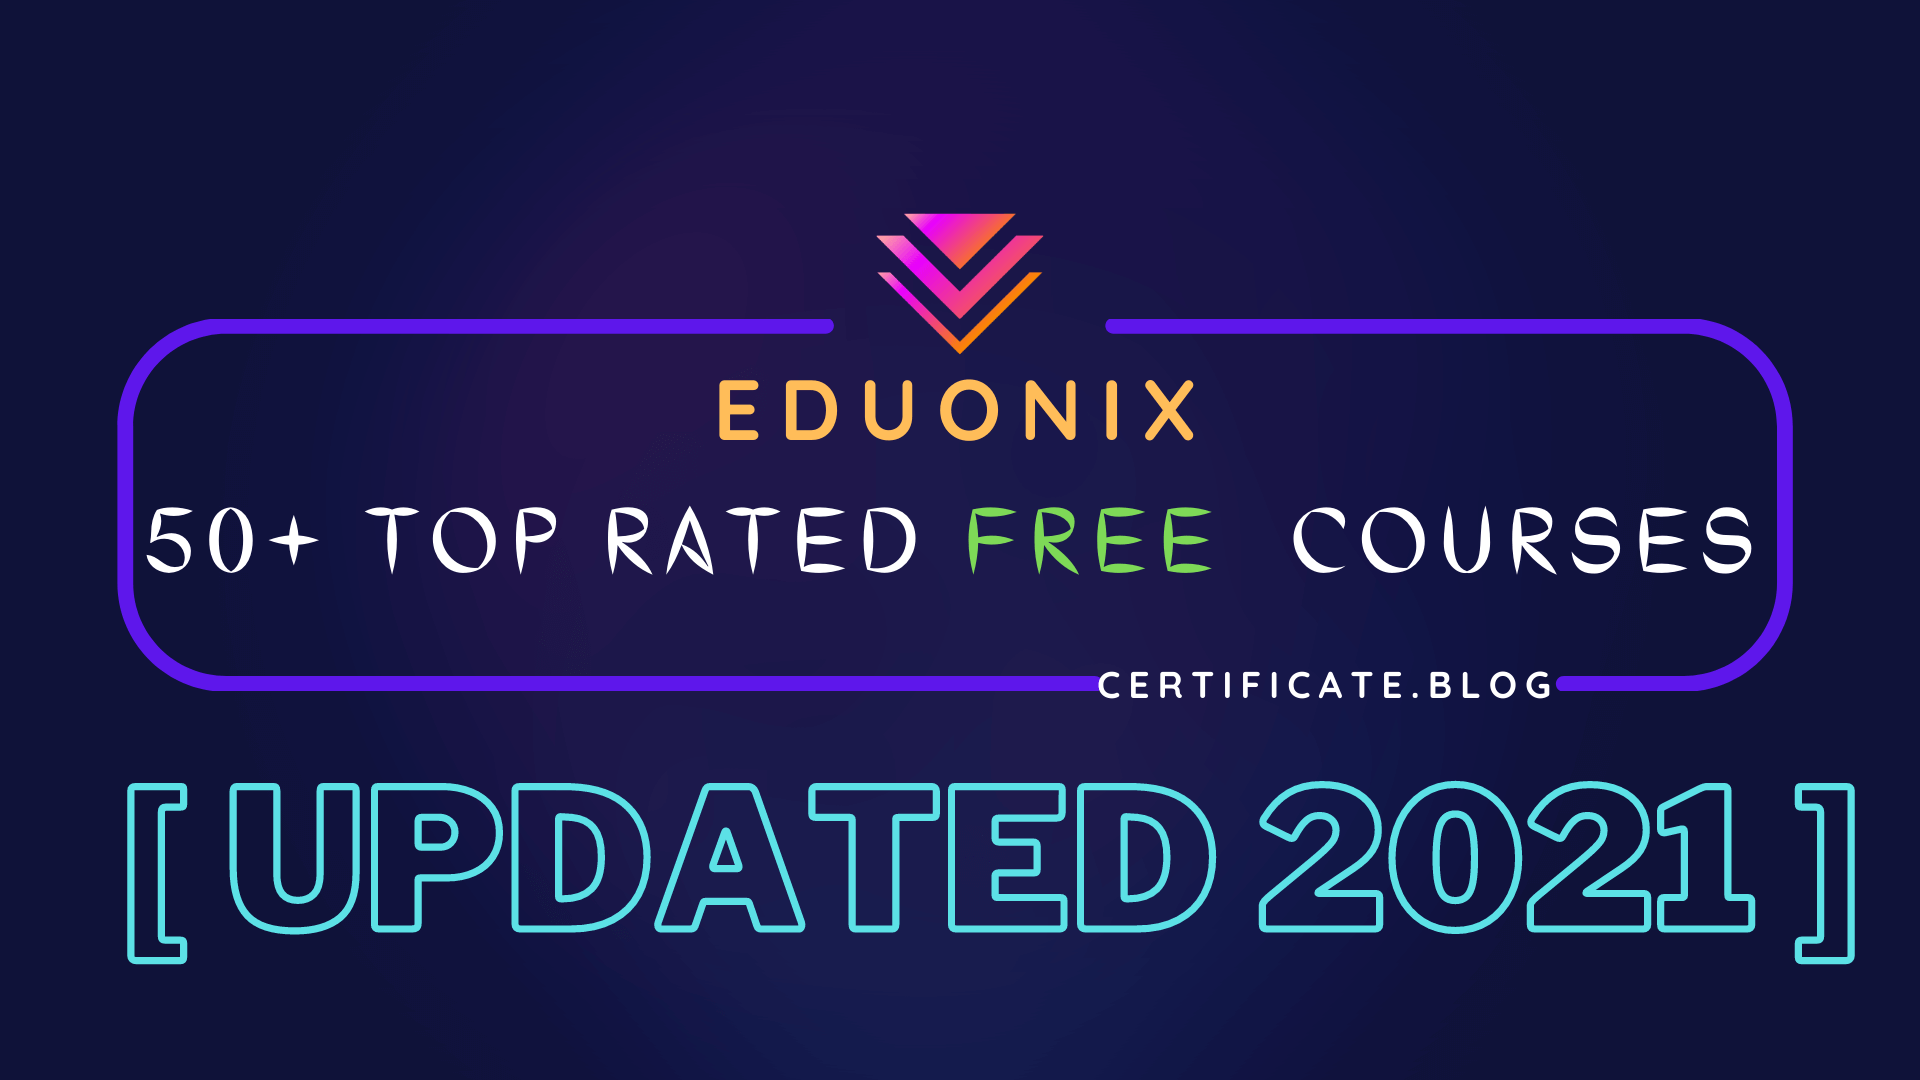 50+ Top Rated Free Online Courses from eduonix [UPDATED January 2021]